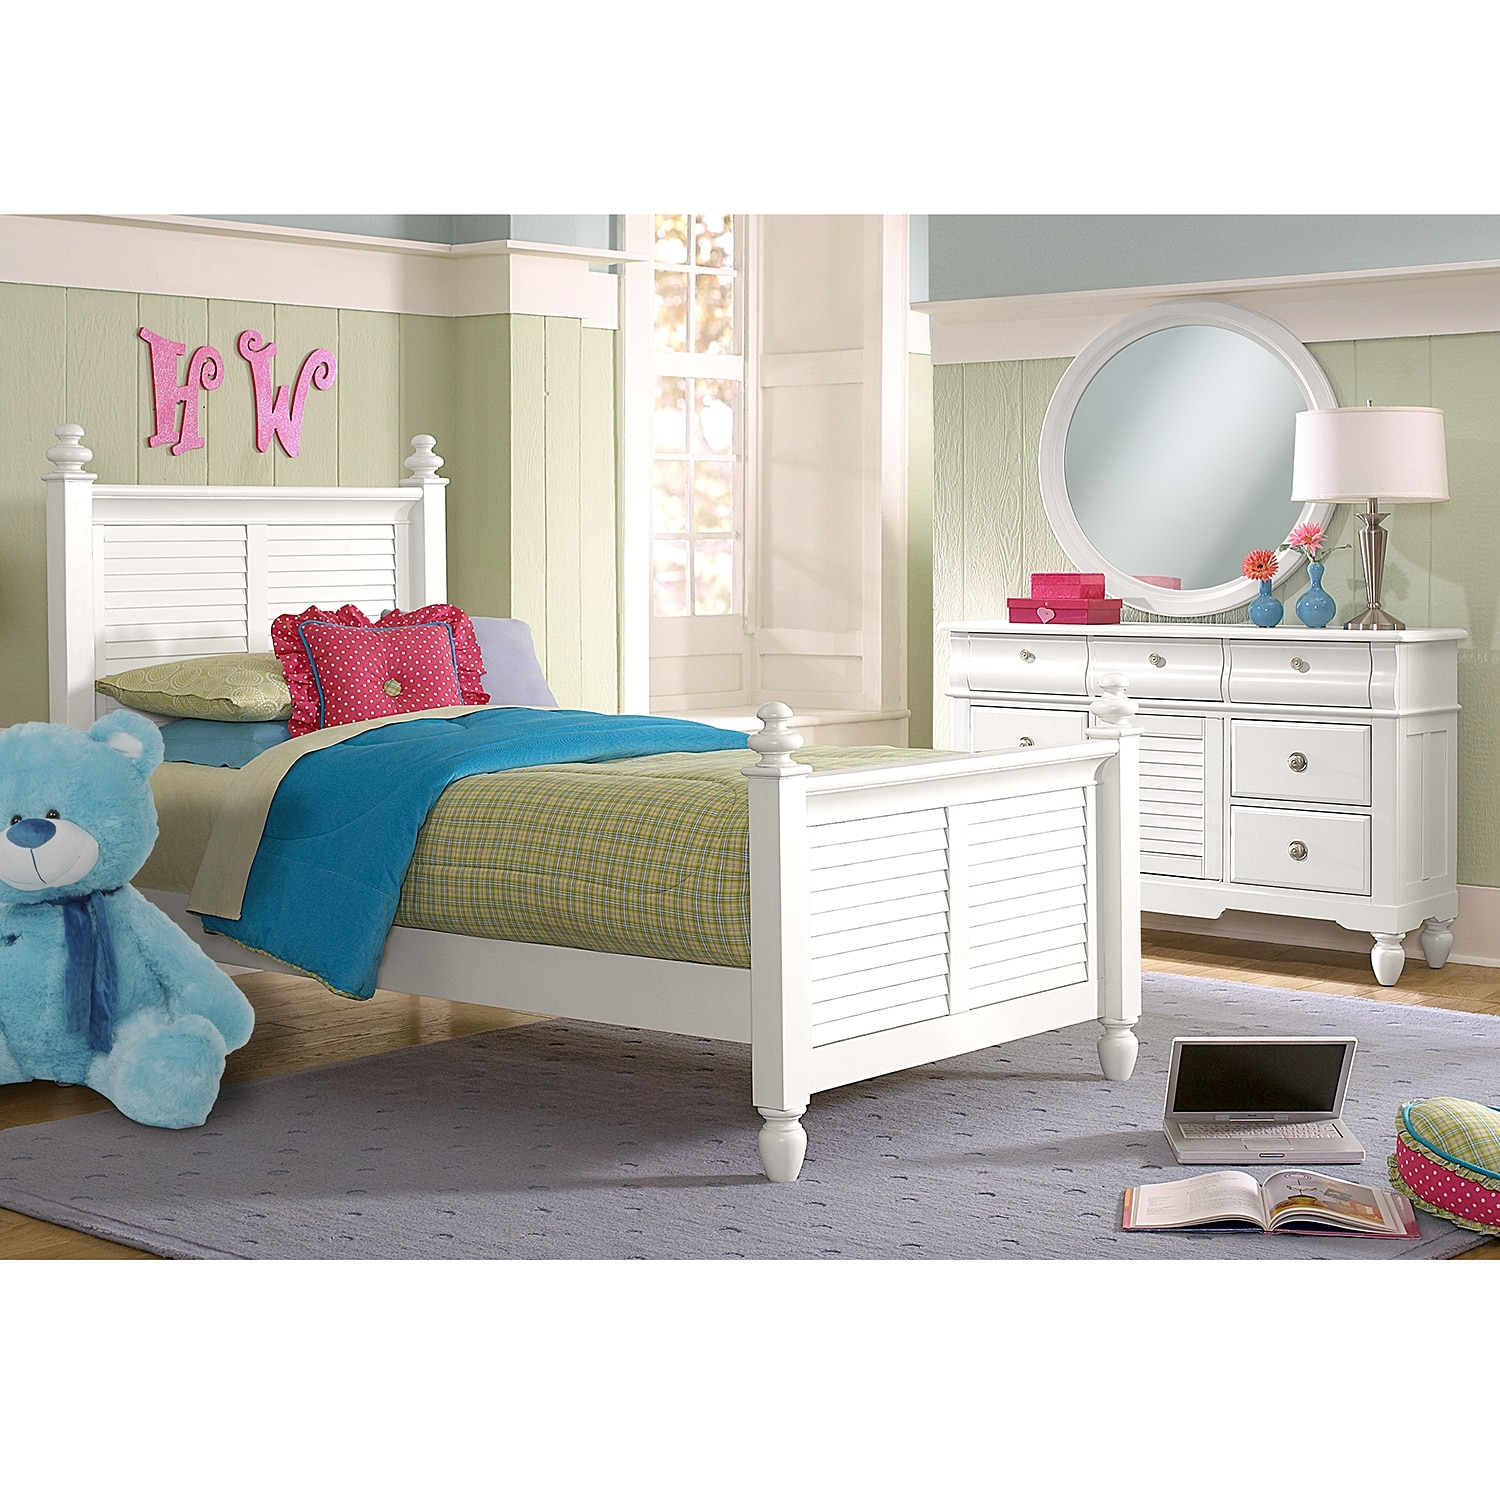 Seaside 5 Piece Full Bedroom Set   White